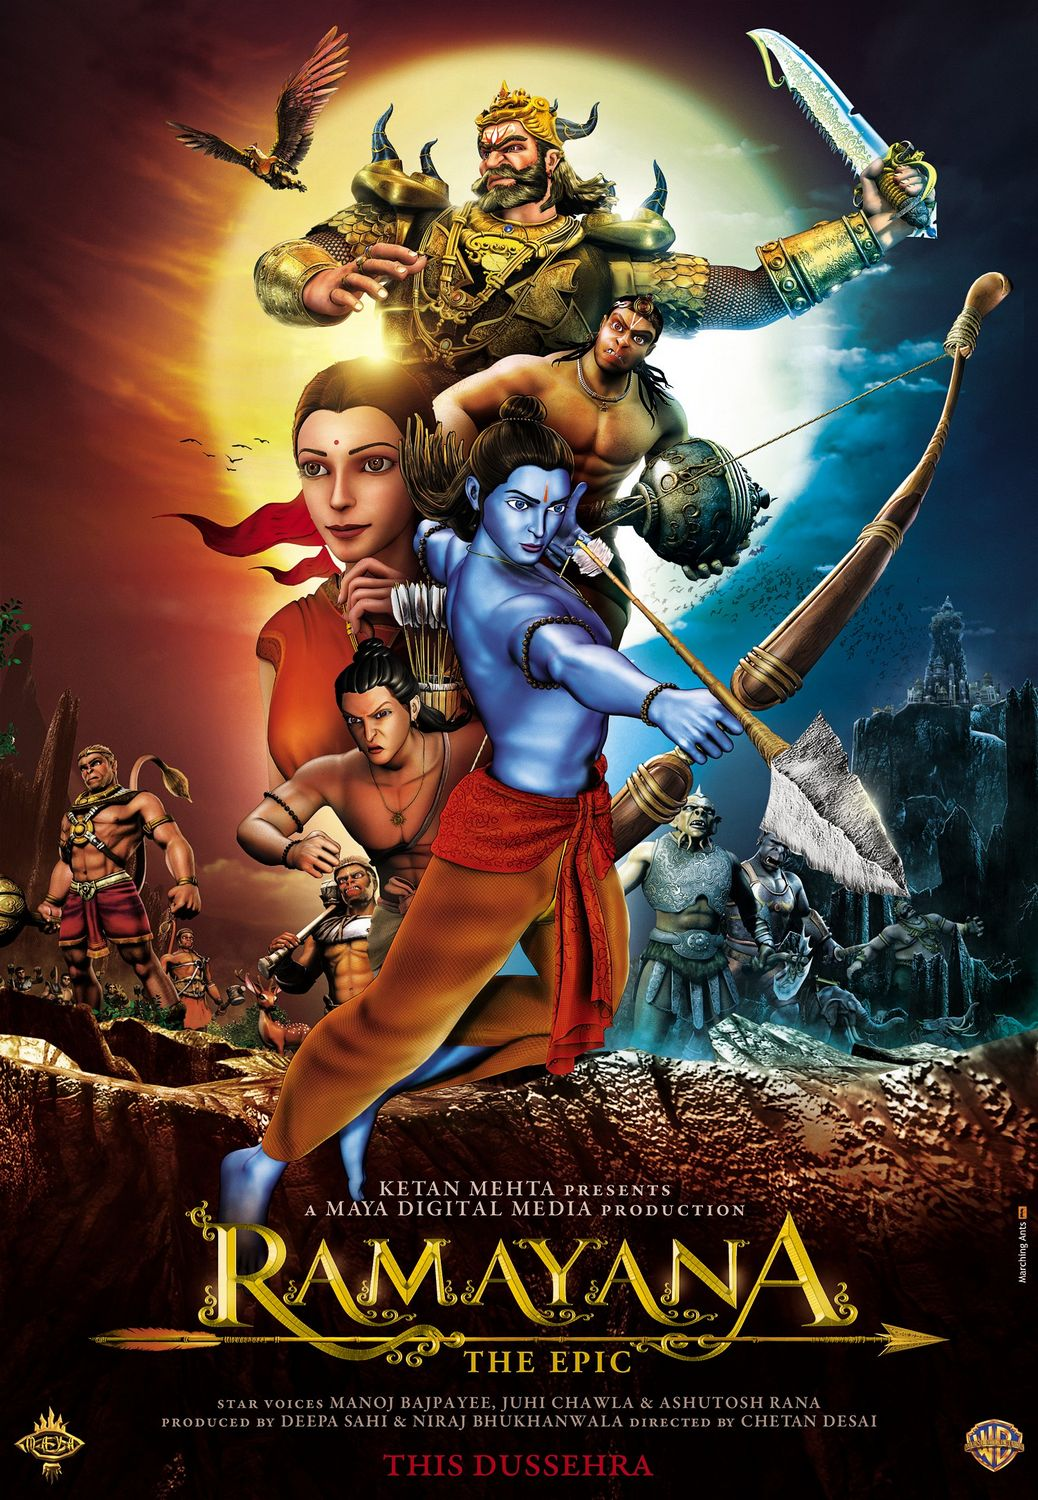 The Patriots Cave: Ramayana - The Epic